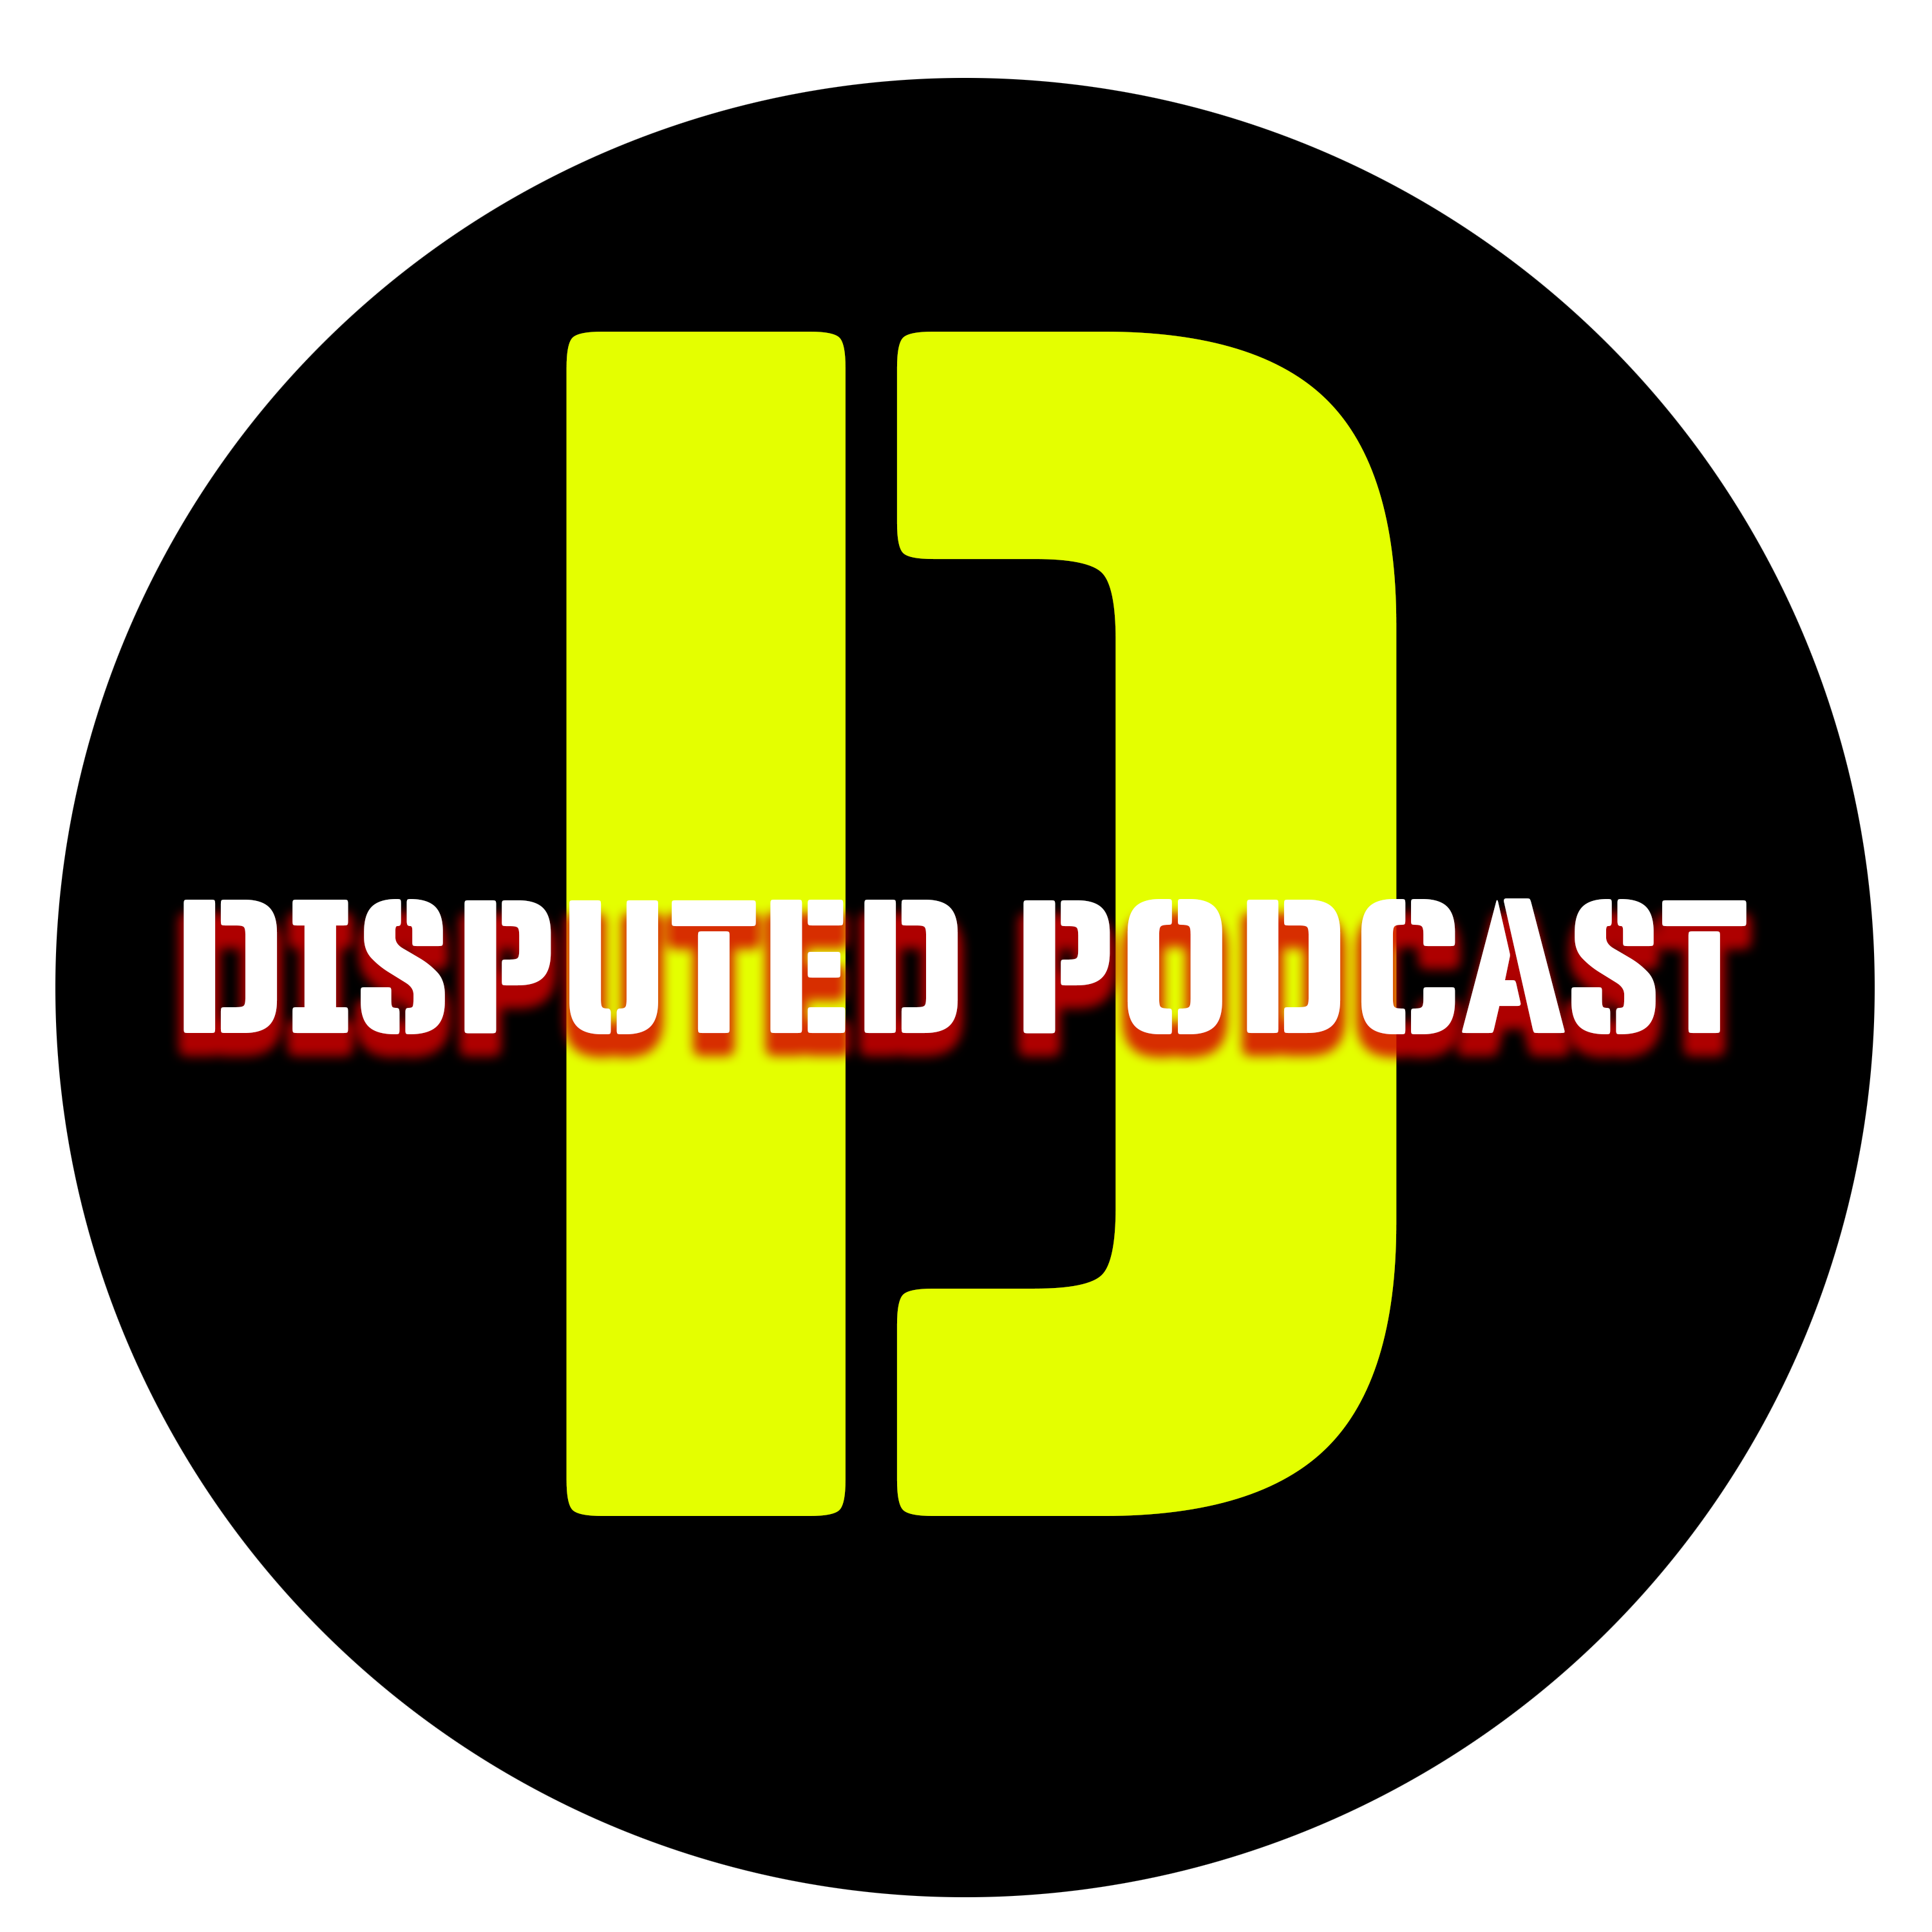 Disputed Podcast